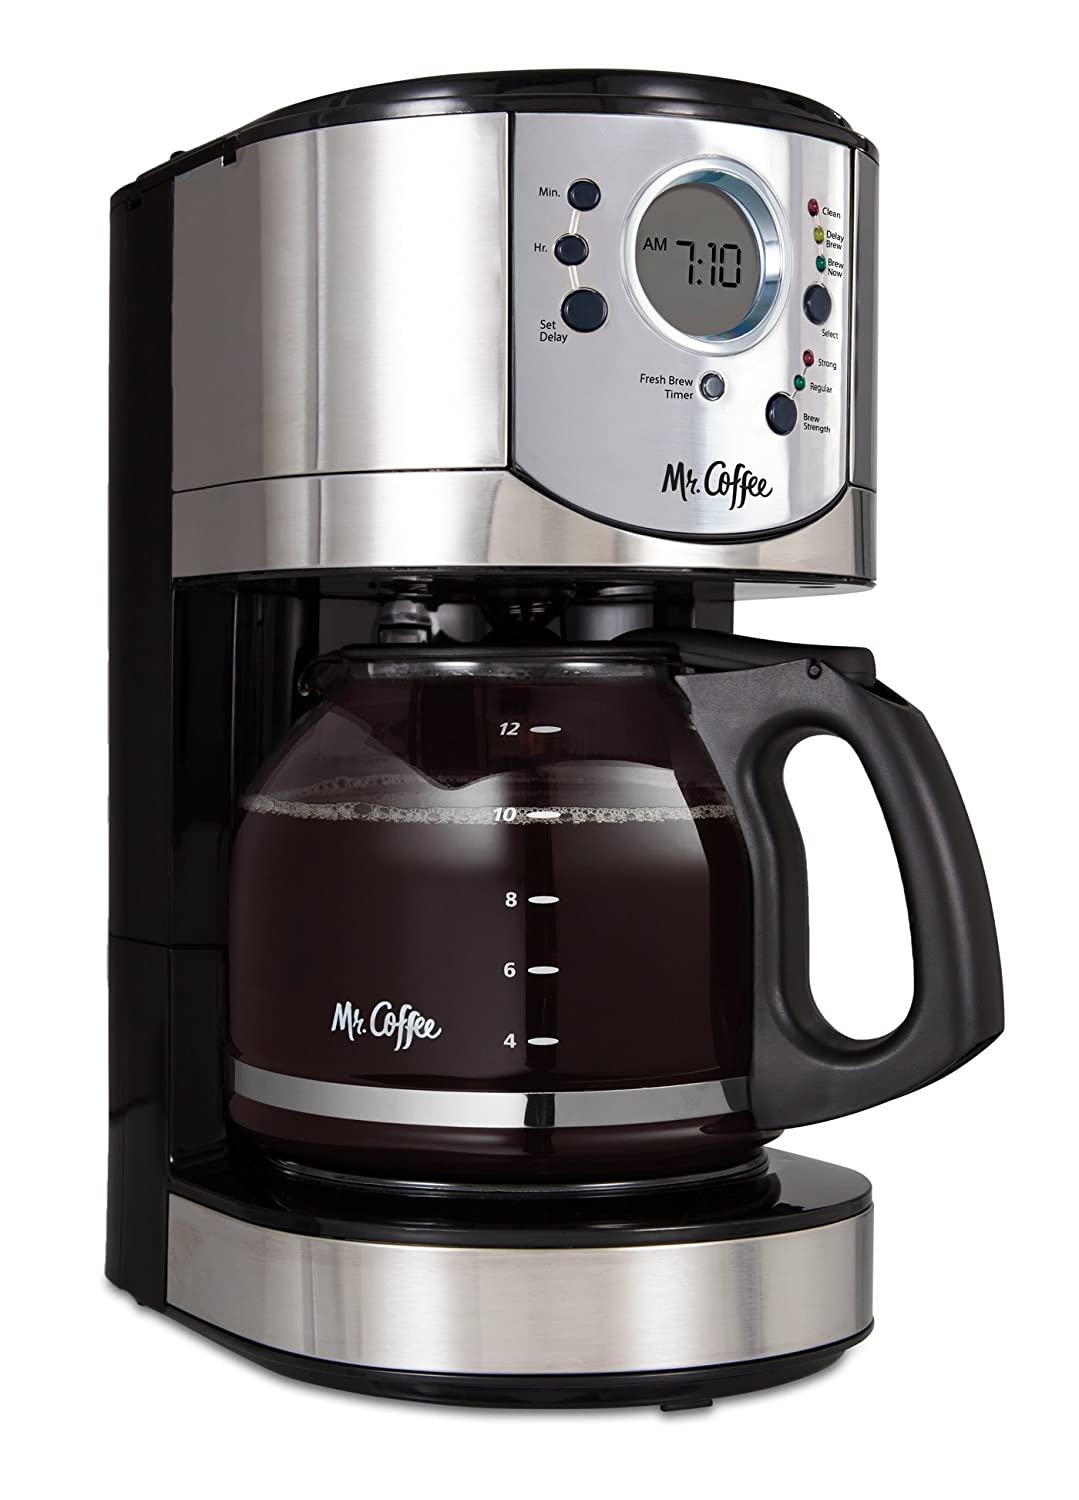 Mr. Coffee 12-Cup Programmable Coffee Maker with Brew Strength Selector, Brushed Chrome Accents, BVMC-CJX31-AM